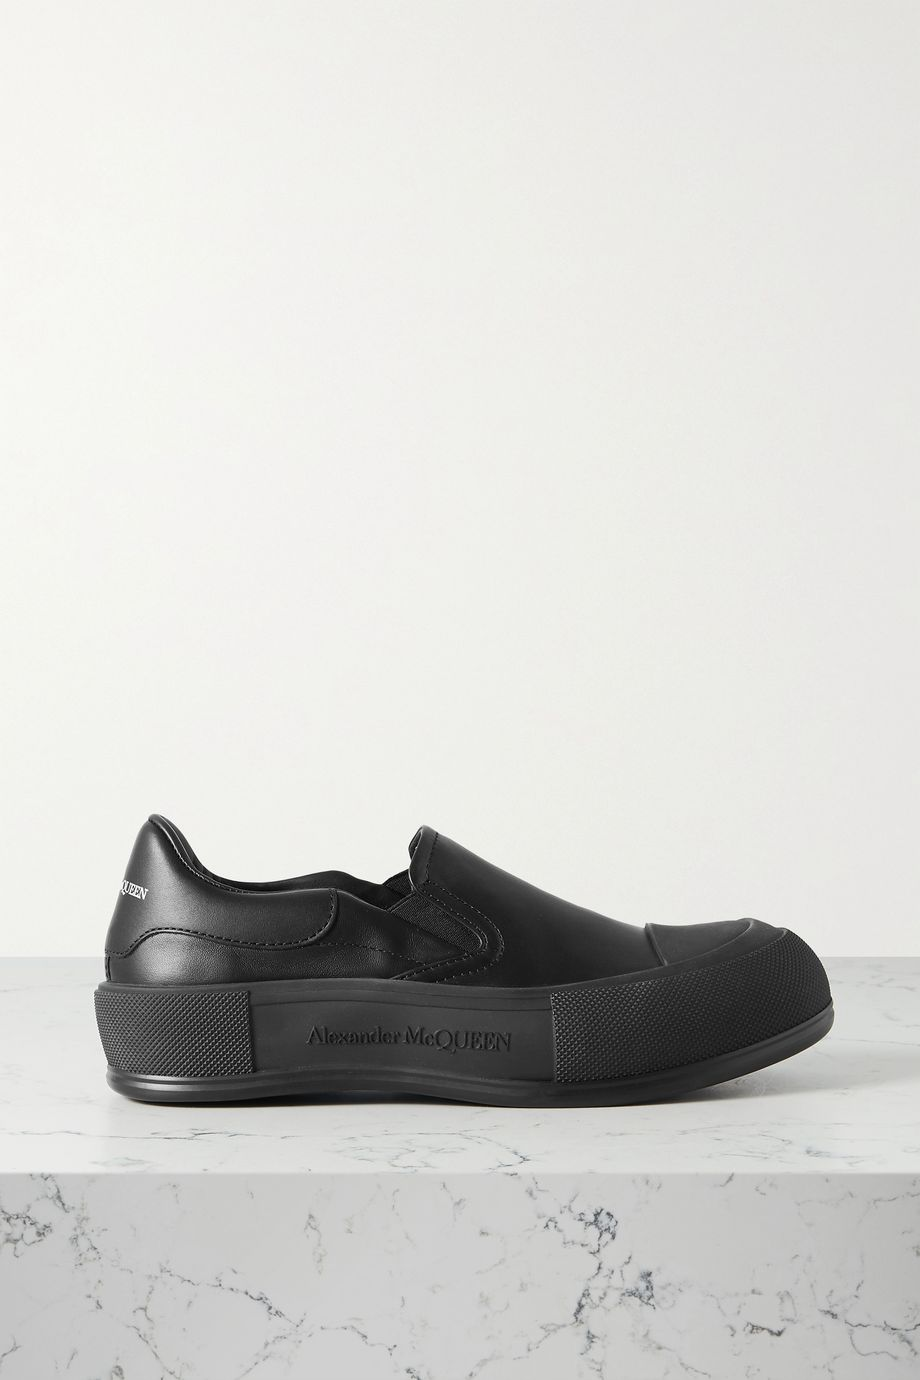 ALEXANDER MCQUEEN Leather slip-on exaggerated-sole sneakers